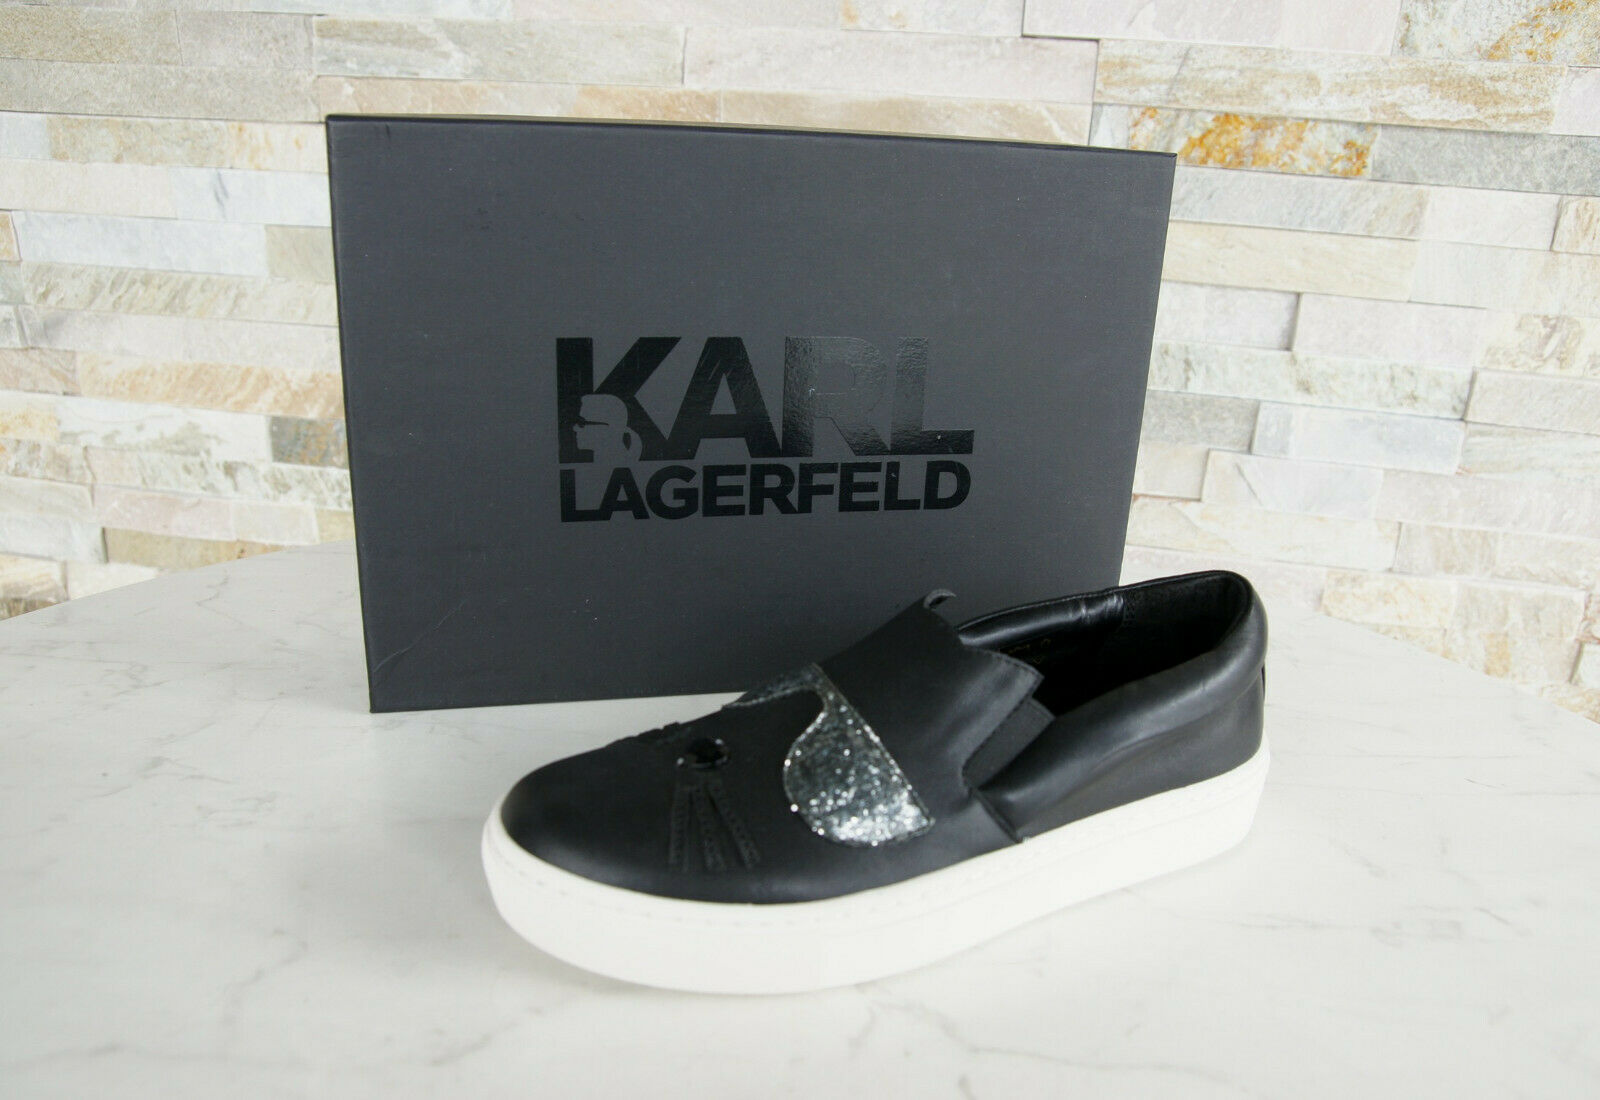 Karl Lagerfeld Eu 37 UK4 Us 6 Slipper shoes shoes Black New Formerly Rrp